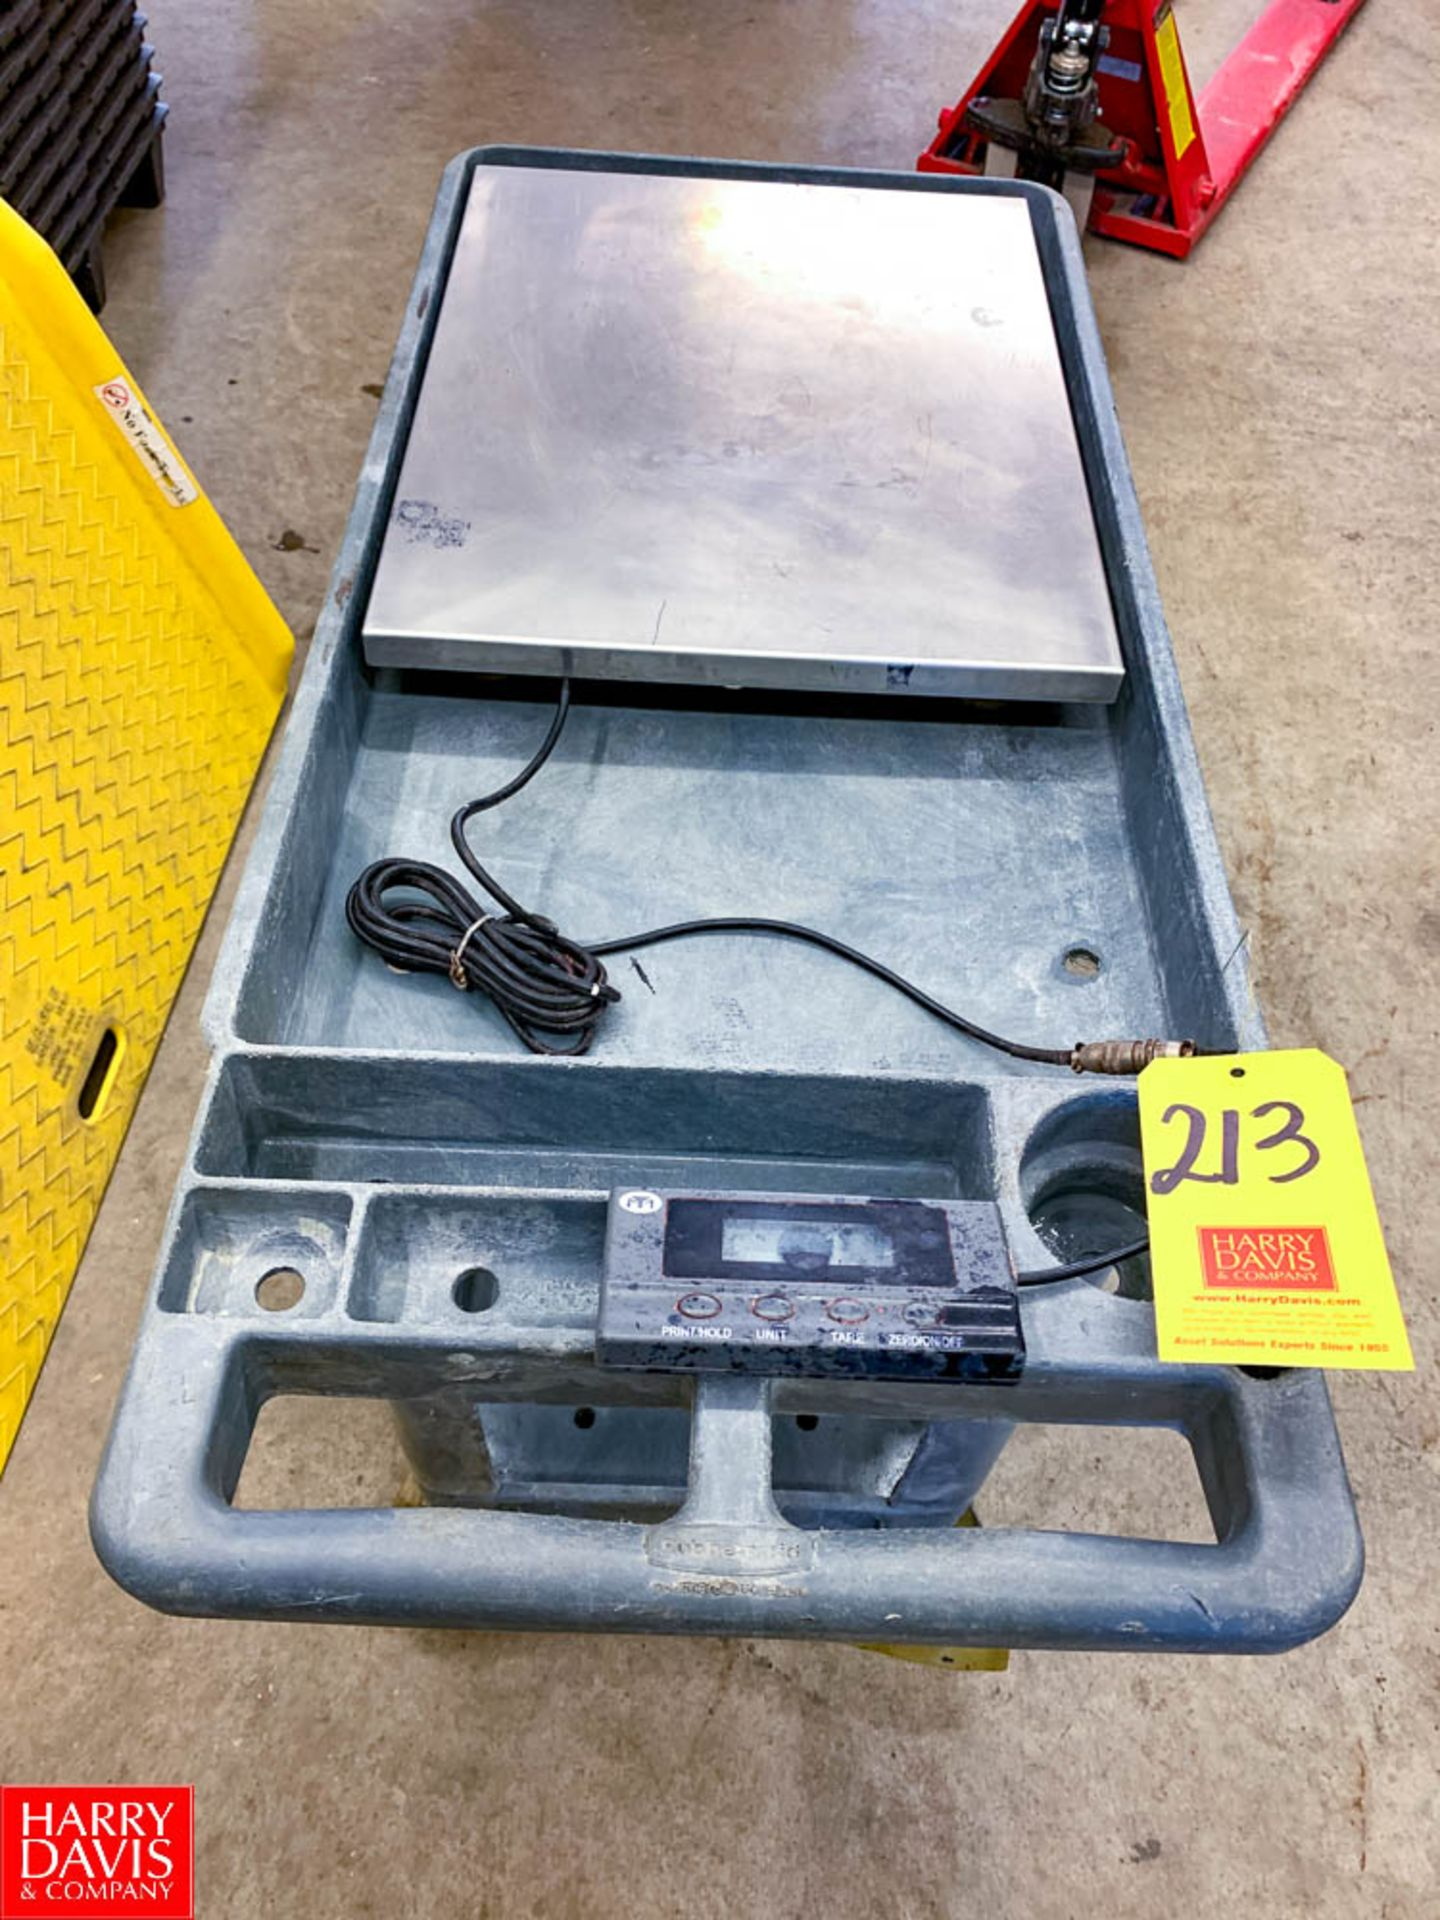 S/S Digital Scale Mounted On Cart